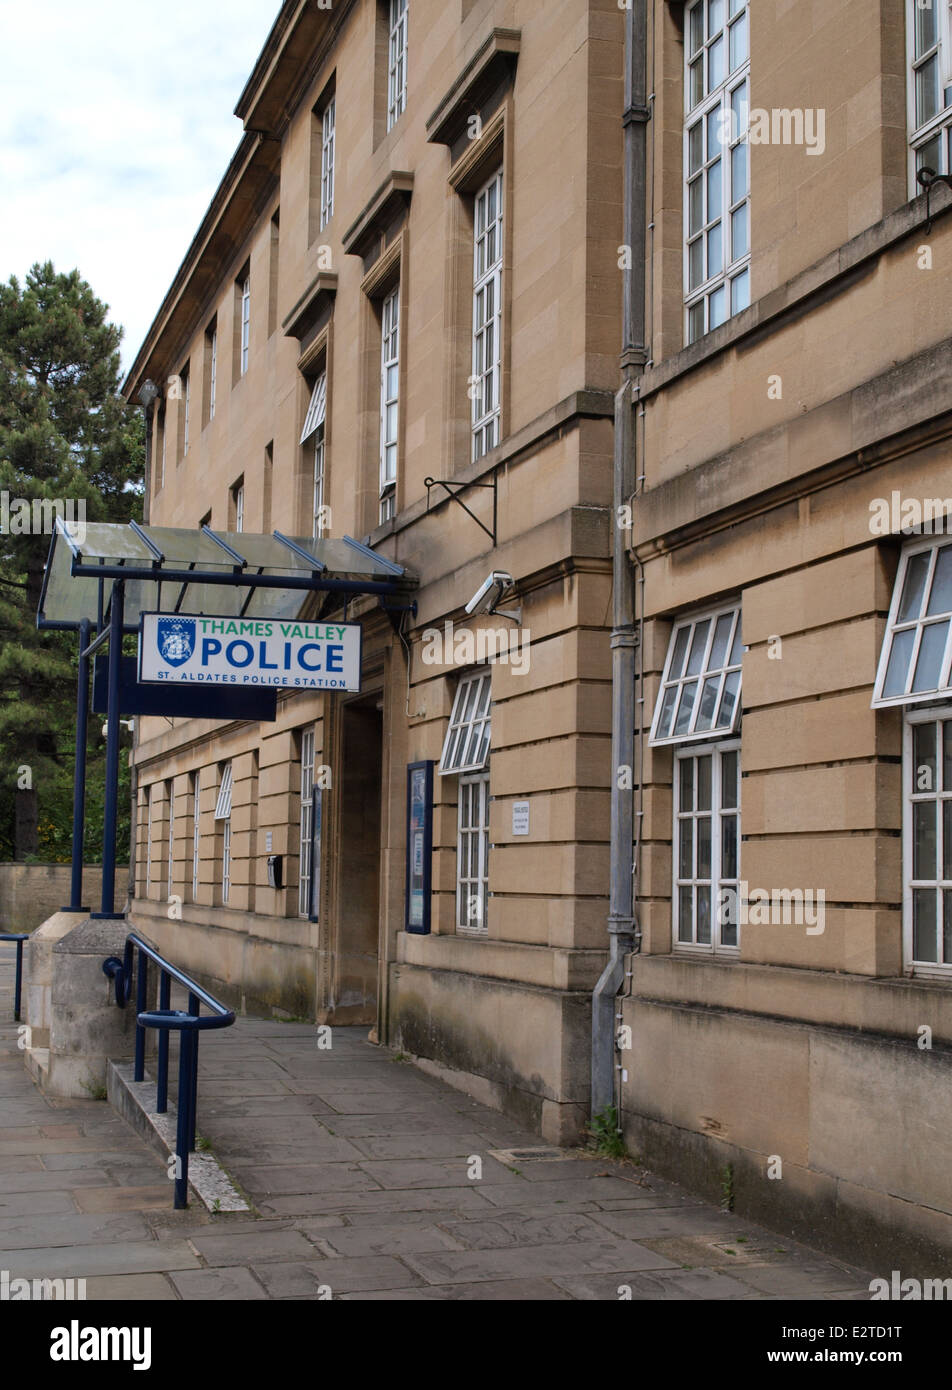 Thames Valley Police, St. Aldates Police Station, Oxford, UK - Stock Image